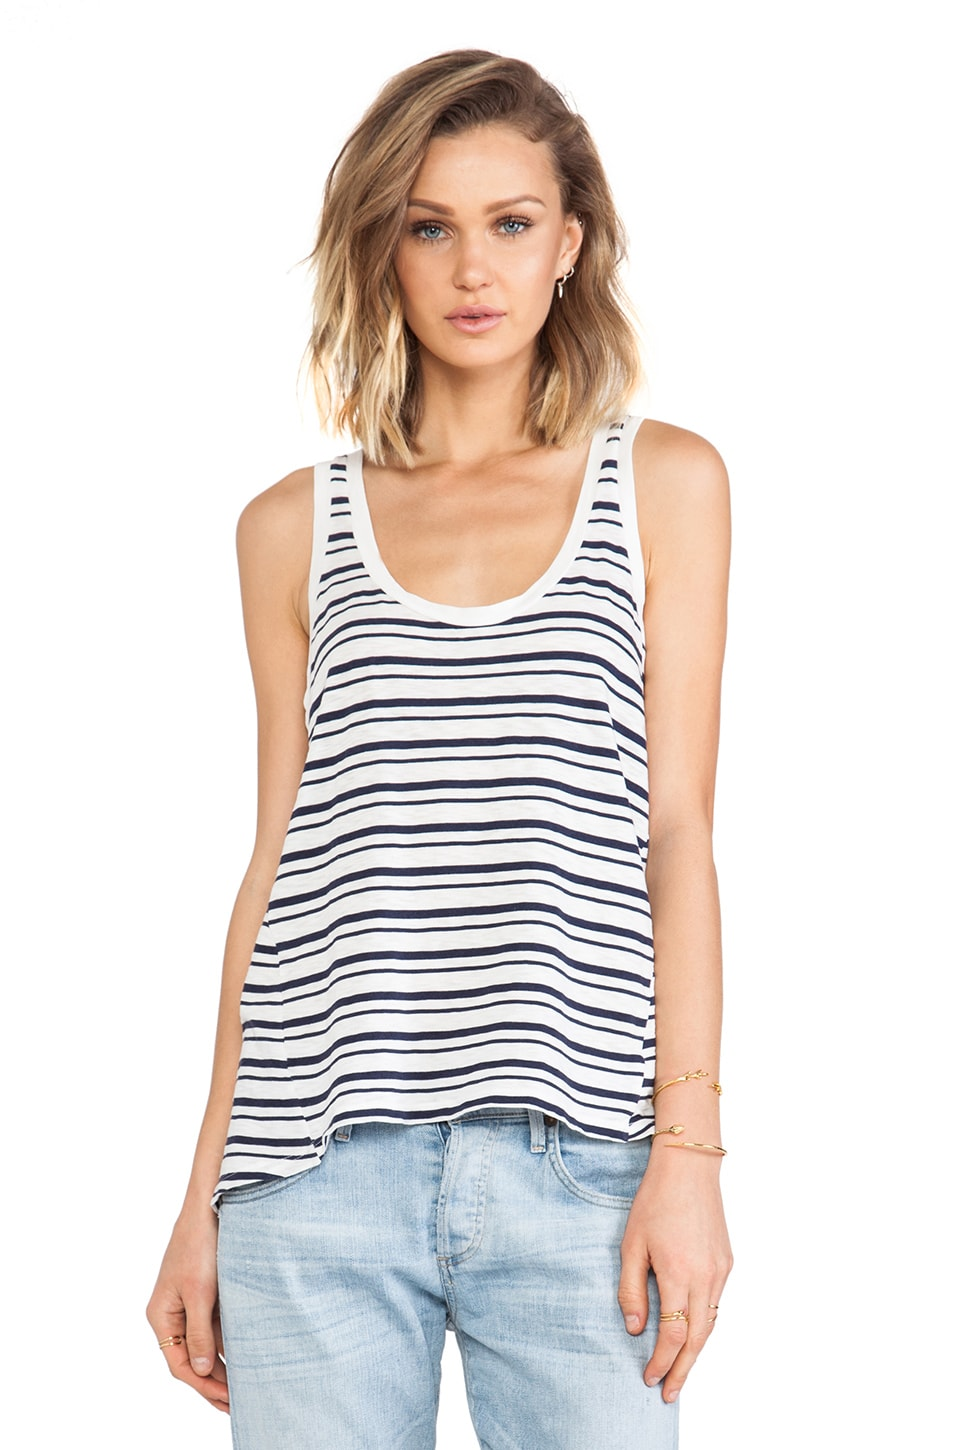 Splendid Vintage Coastal Stripe Tank in White